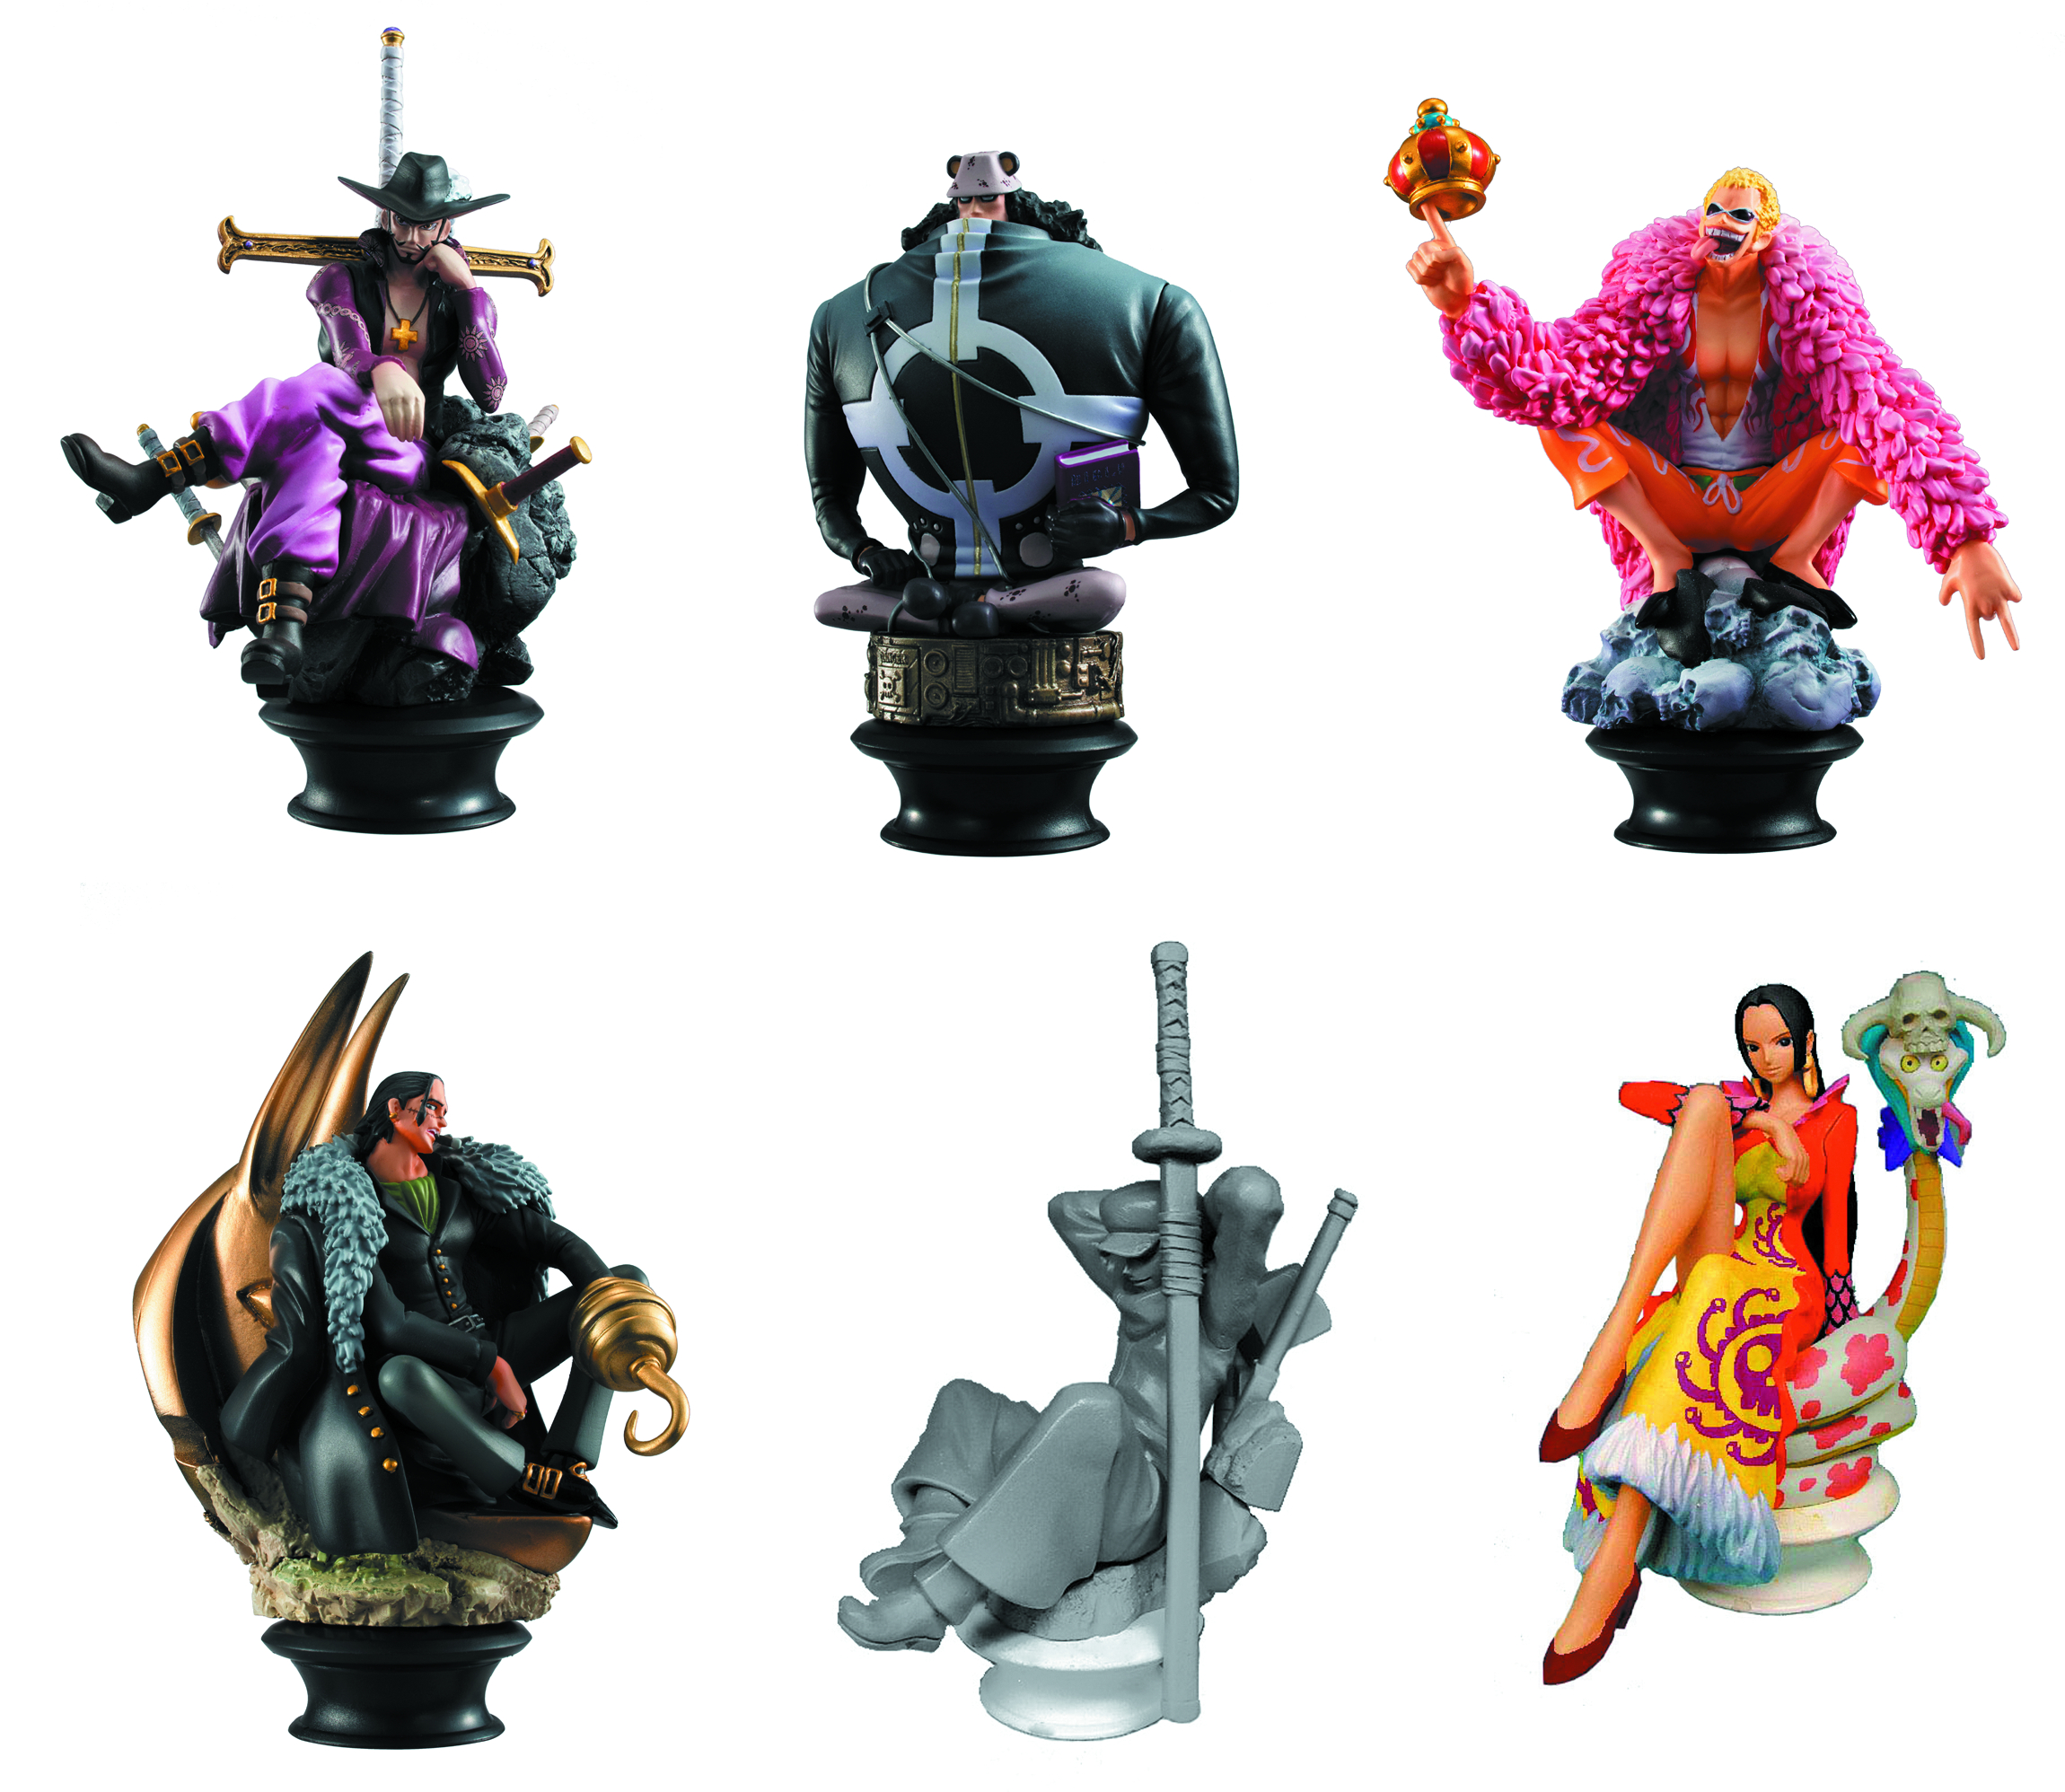 ONE PIECE CHESS PIECE COLL 6PC BMB DS VOL 3